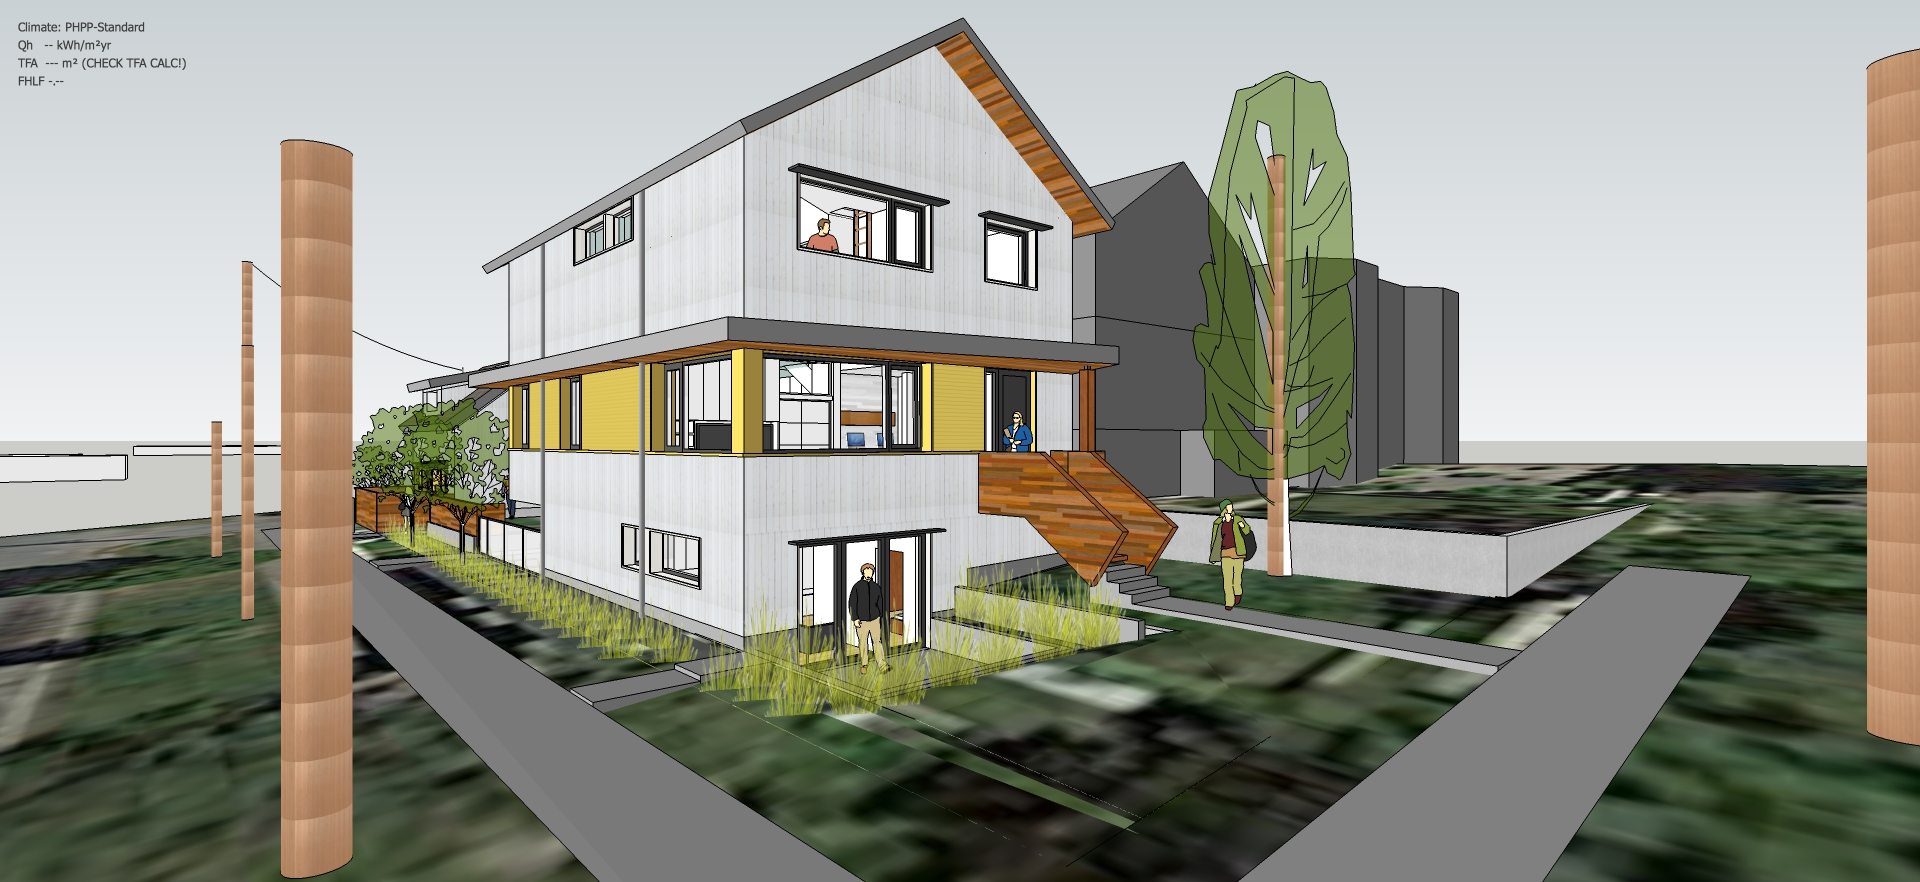 E.38th Passive House and LWH